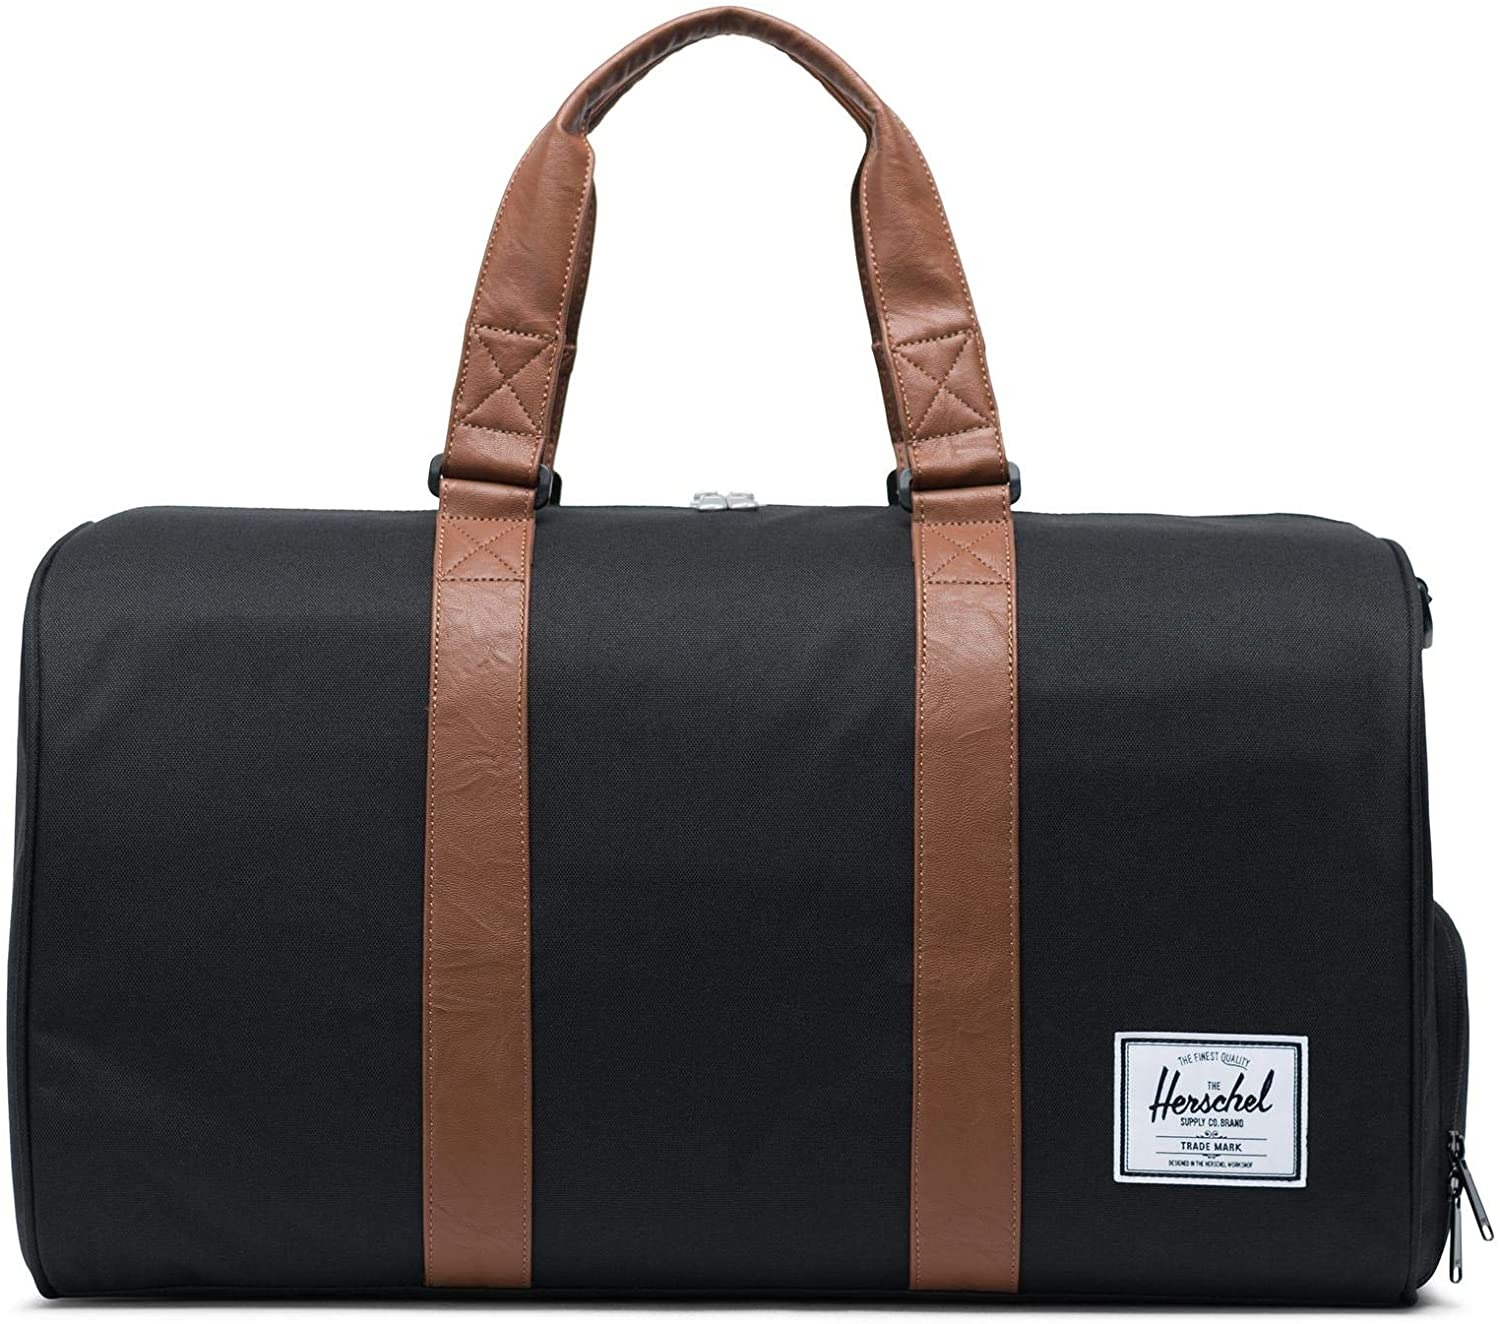 | Herschel Novel Duffel Bag | Travel Duffels